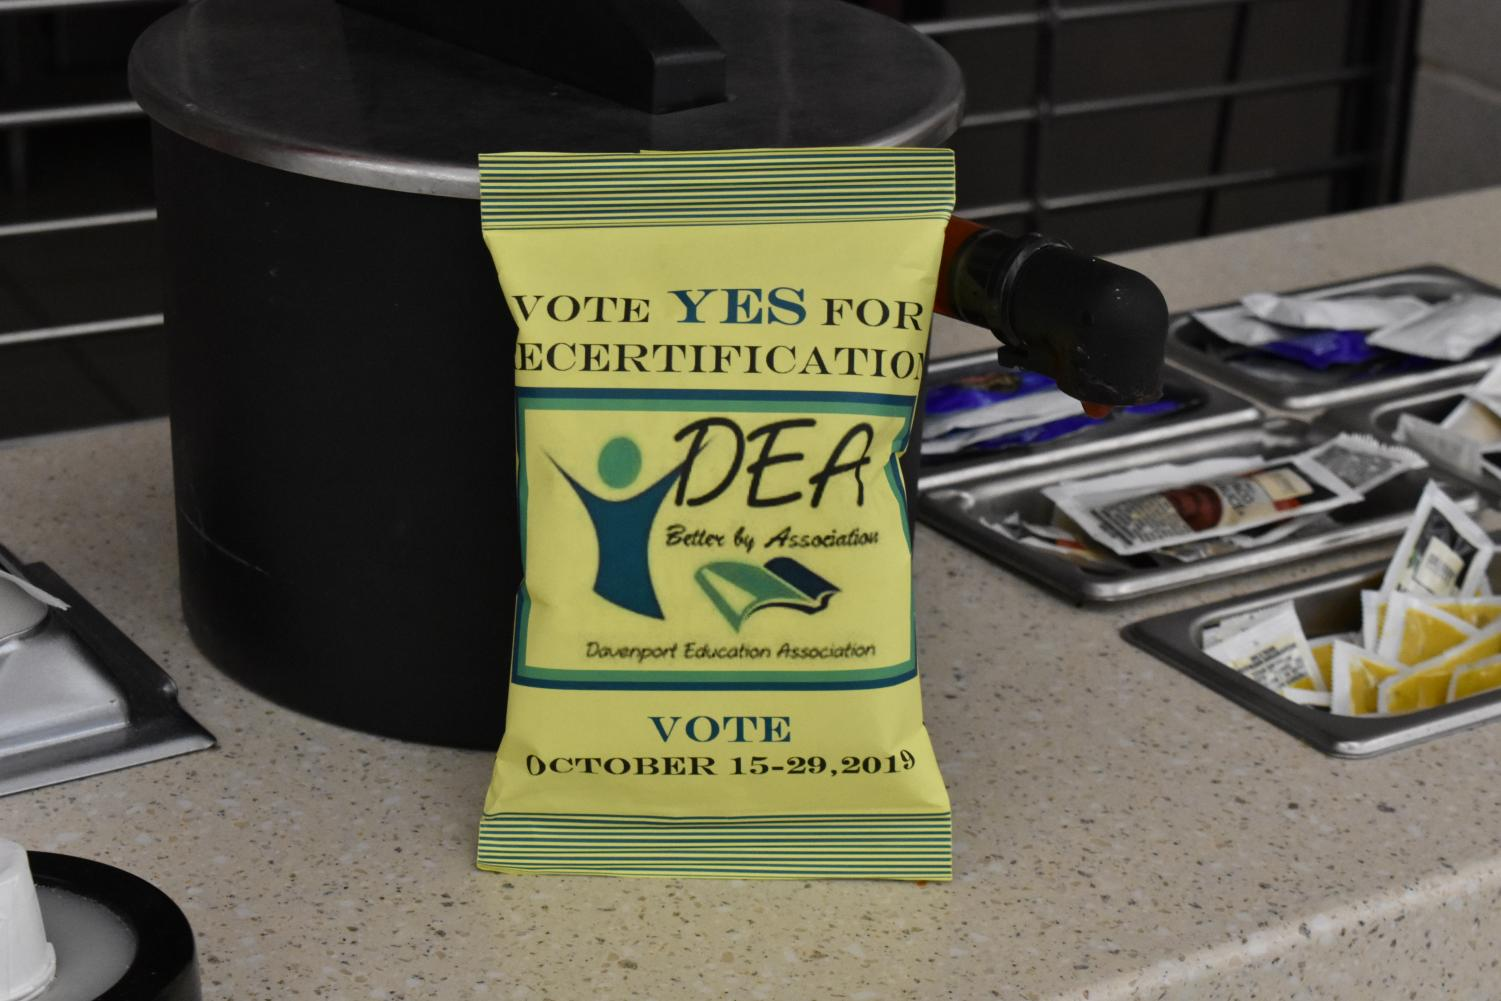 This bag of chips is used to spread awareness of the recertification. The bag acts as a reminder to vote yes for recertification.